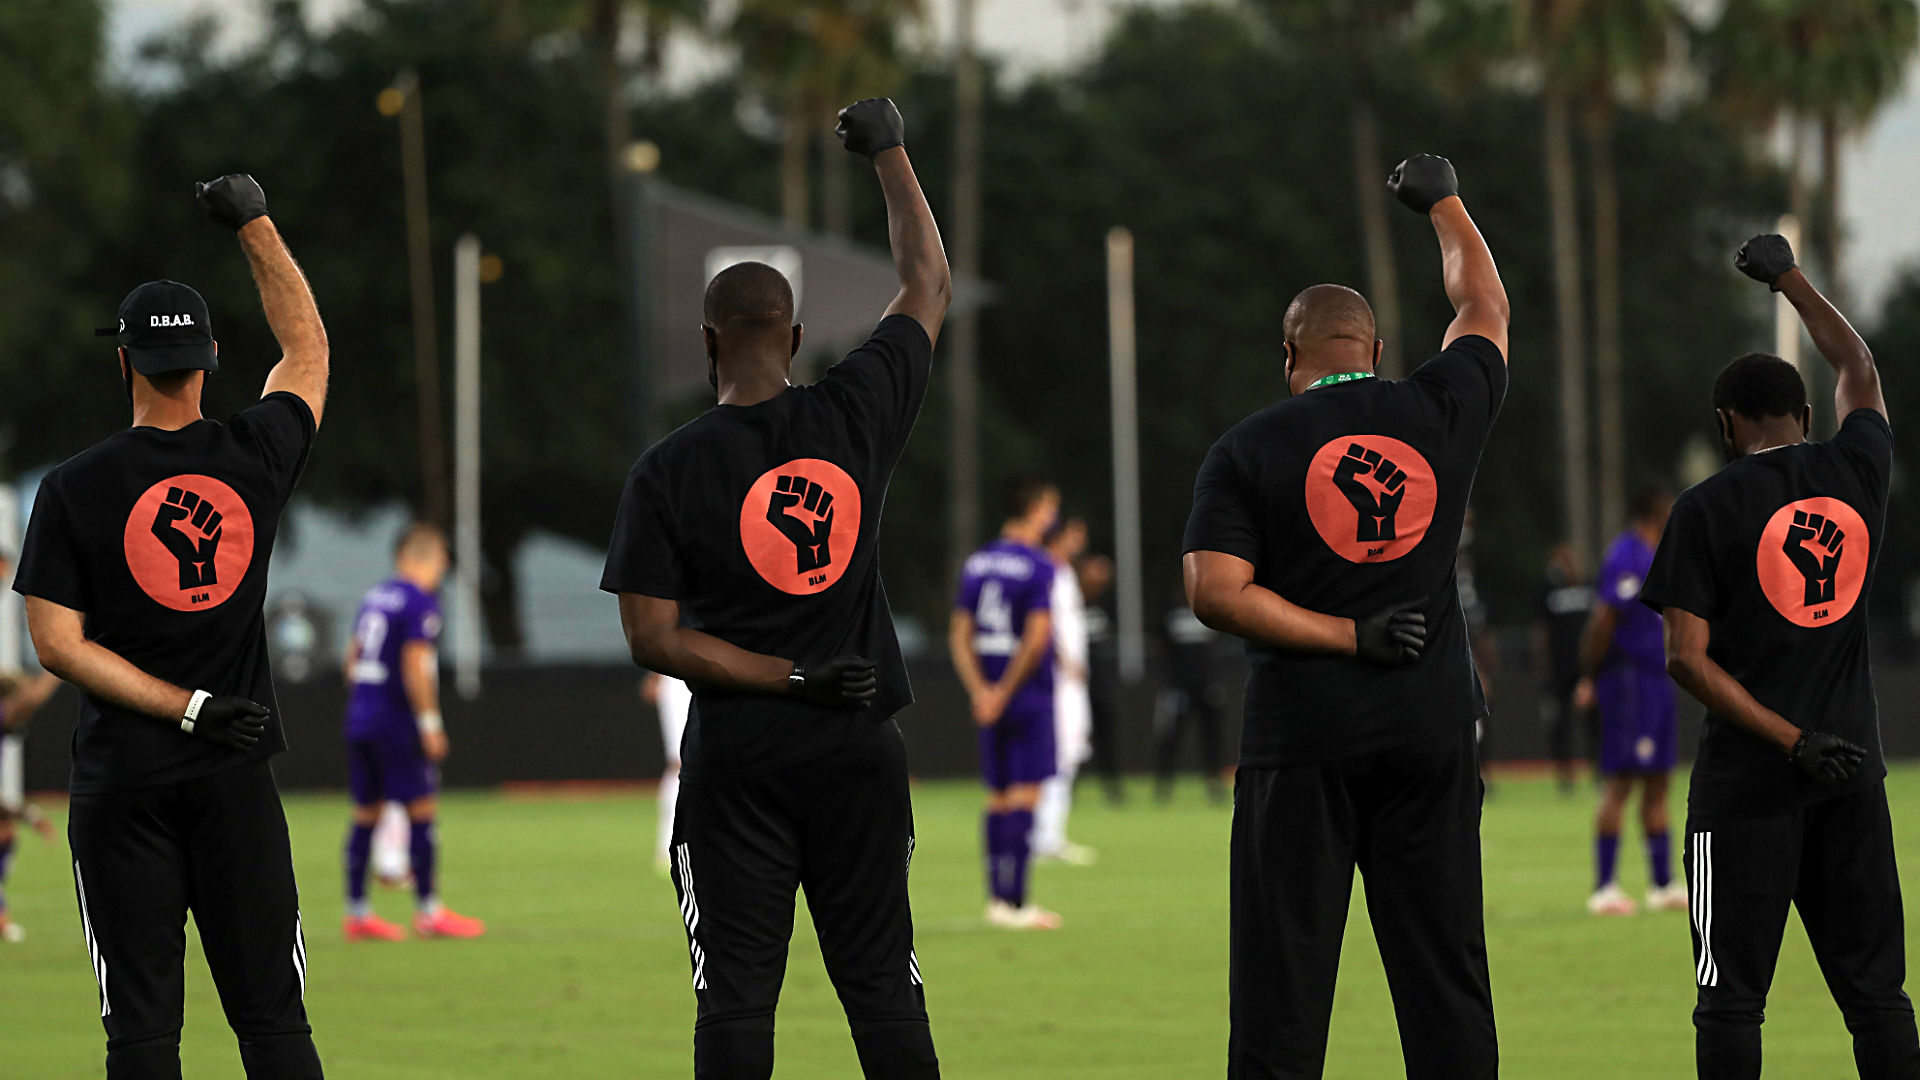 MLS is Back tournament opens with players taking knee, Black Power salutes 1